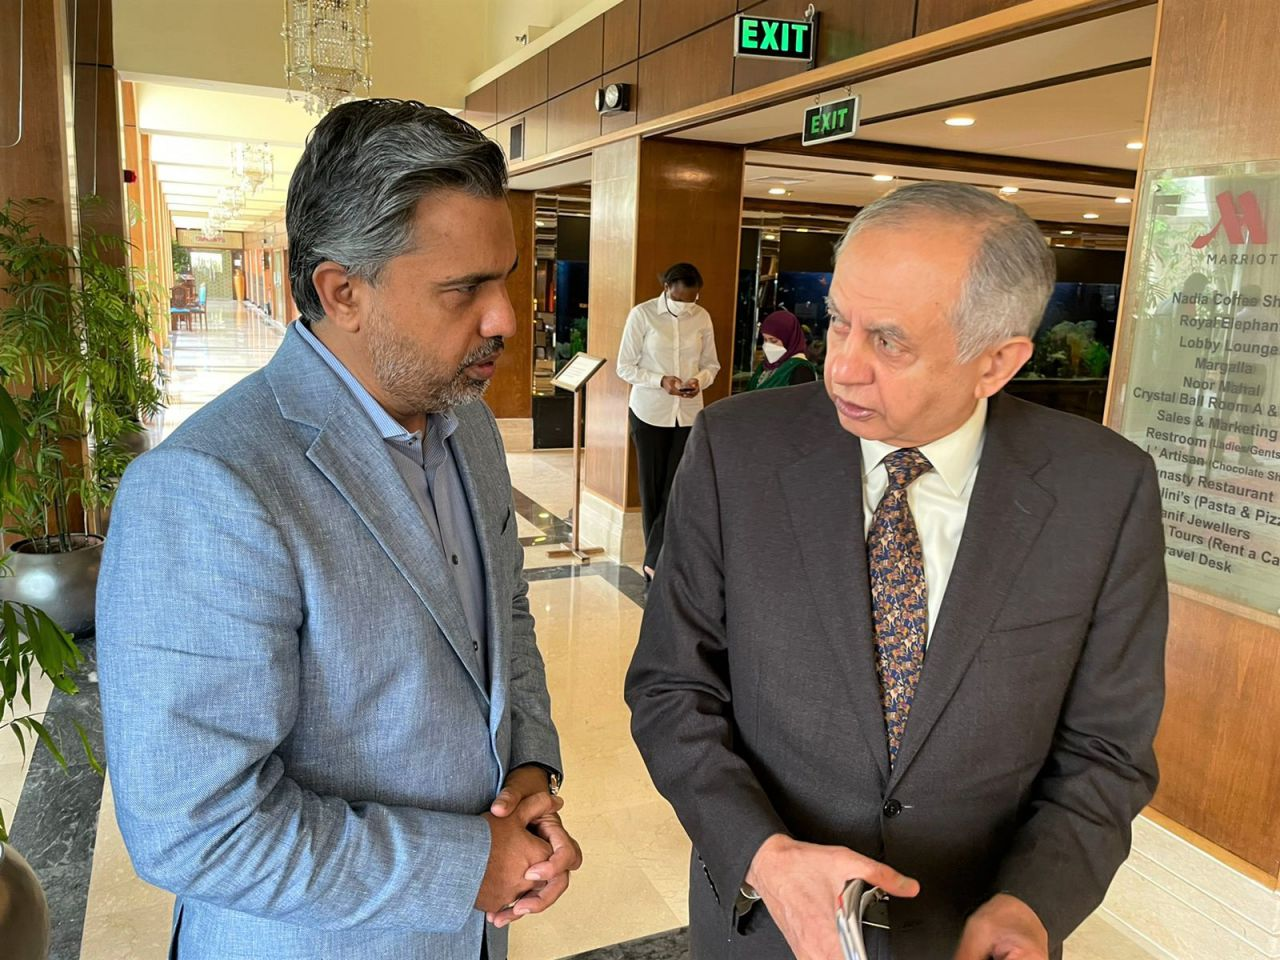 On August 25, 2021, Mr. Qaisar Iqbal Baryar, President, Sialkot Chamber of Commerce & Industry had a meeting with Mr. Abdul Razzak Dawood, Advisor to Prime Minister on Commerce & Investment on Launching Ceremony of 7th Reform Action Plan by Board of Investment, Government of Pakistan at Marriott, Islamabad.